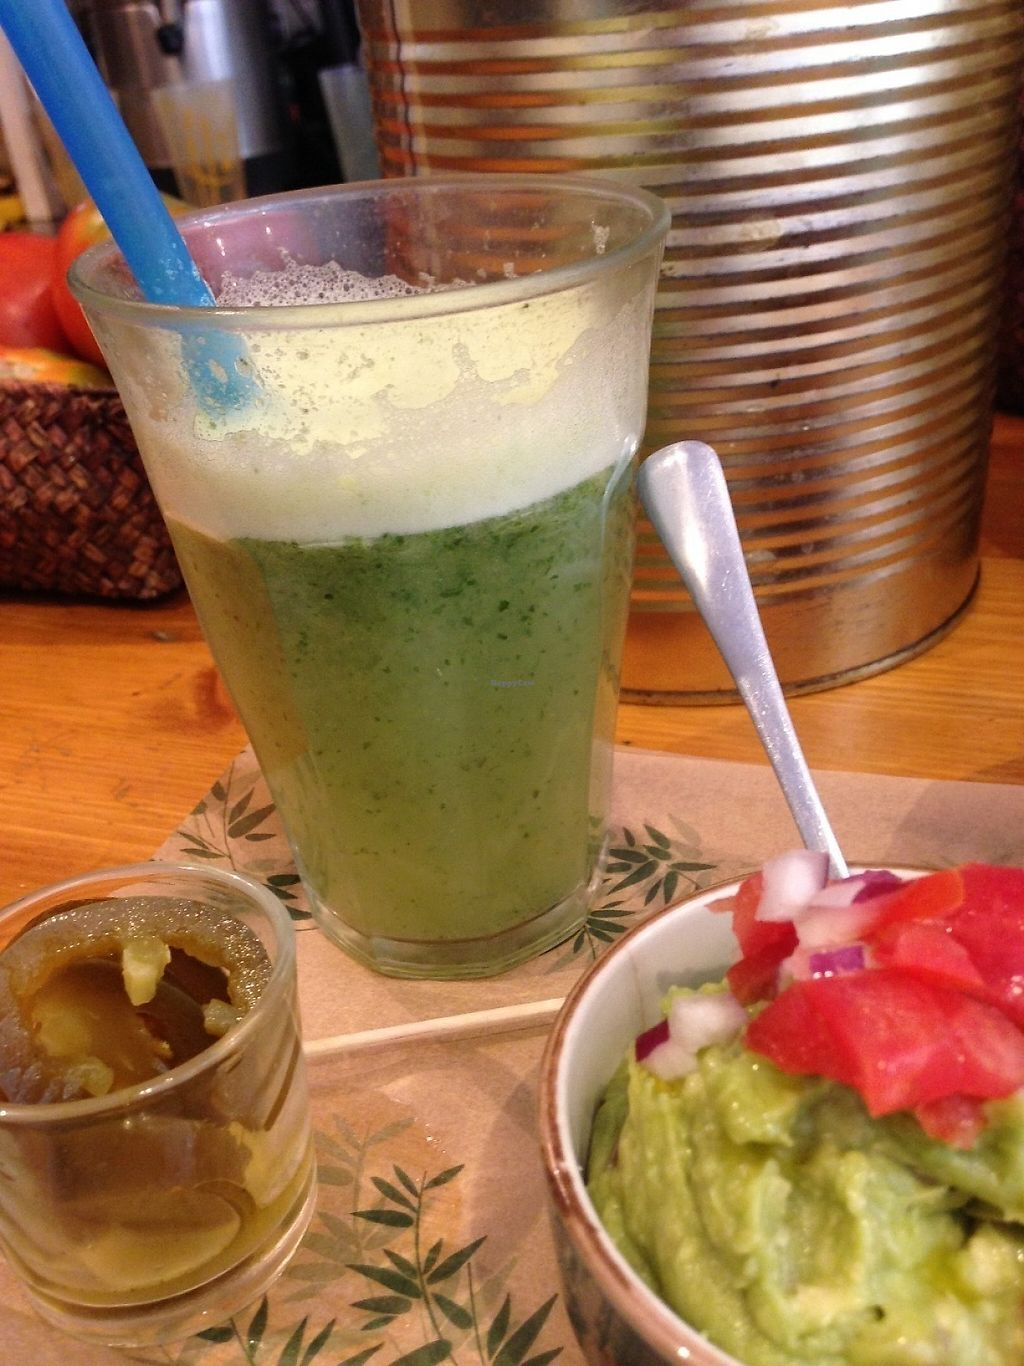 """Photo of Quinoa Bar Vegetaria  by <a href=""""/members/profile/PeytonCarmichael"""">PeytonCarmichael</a> <br/>Ginger-mint lemonade <br/> May 1, 2017  - <a href='/contact/abuse/image/40631/254486'>Report</a>"""